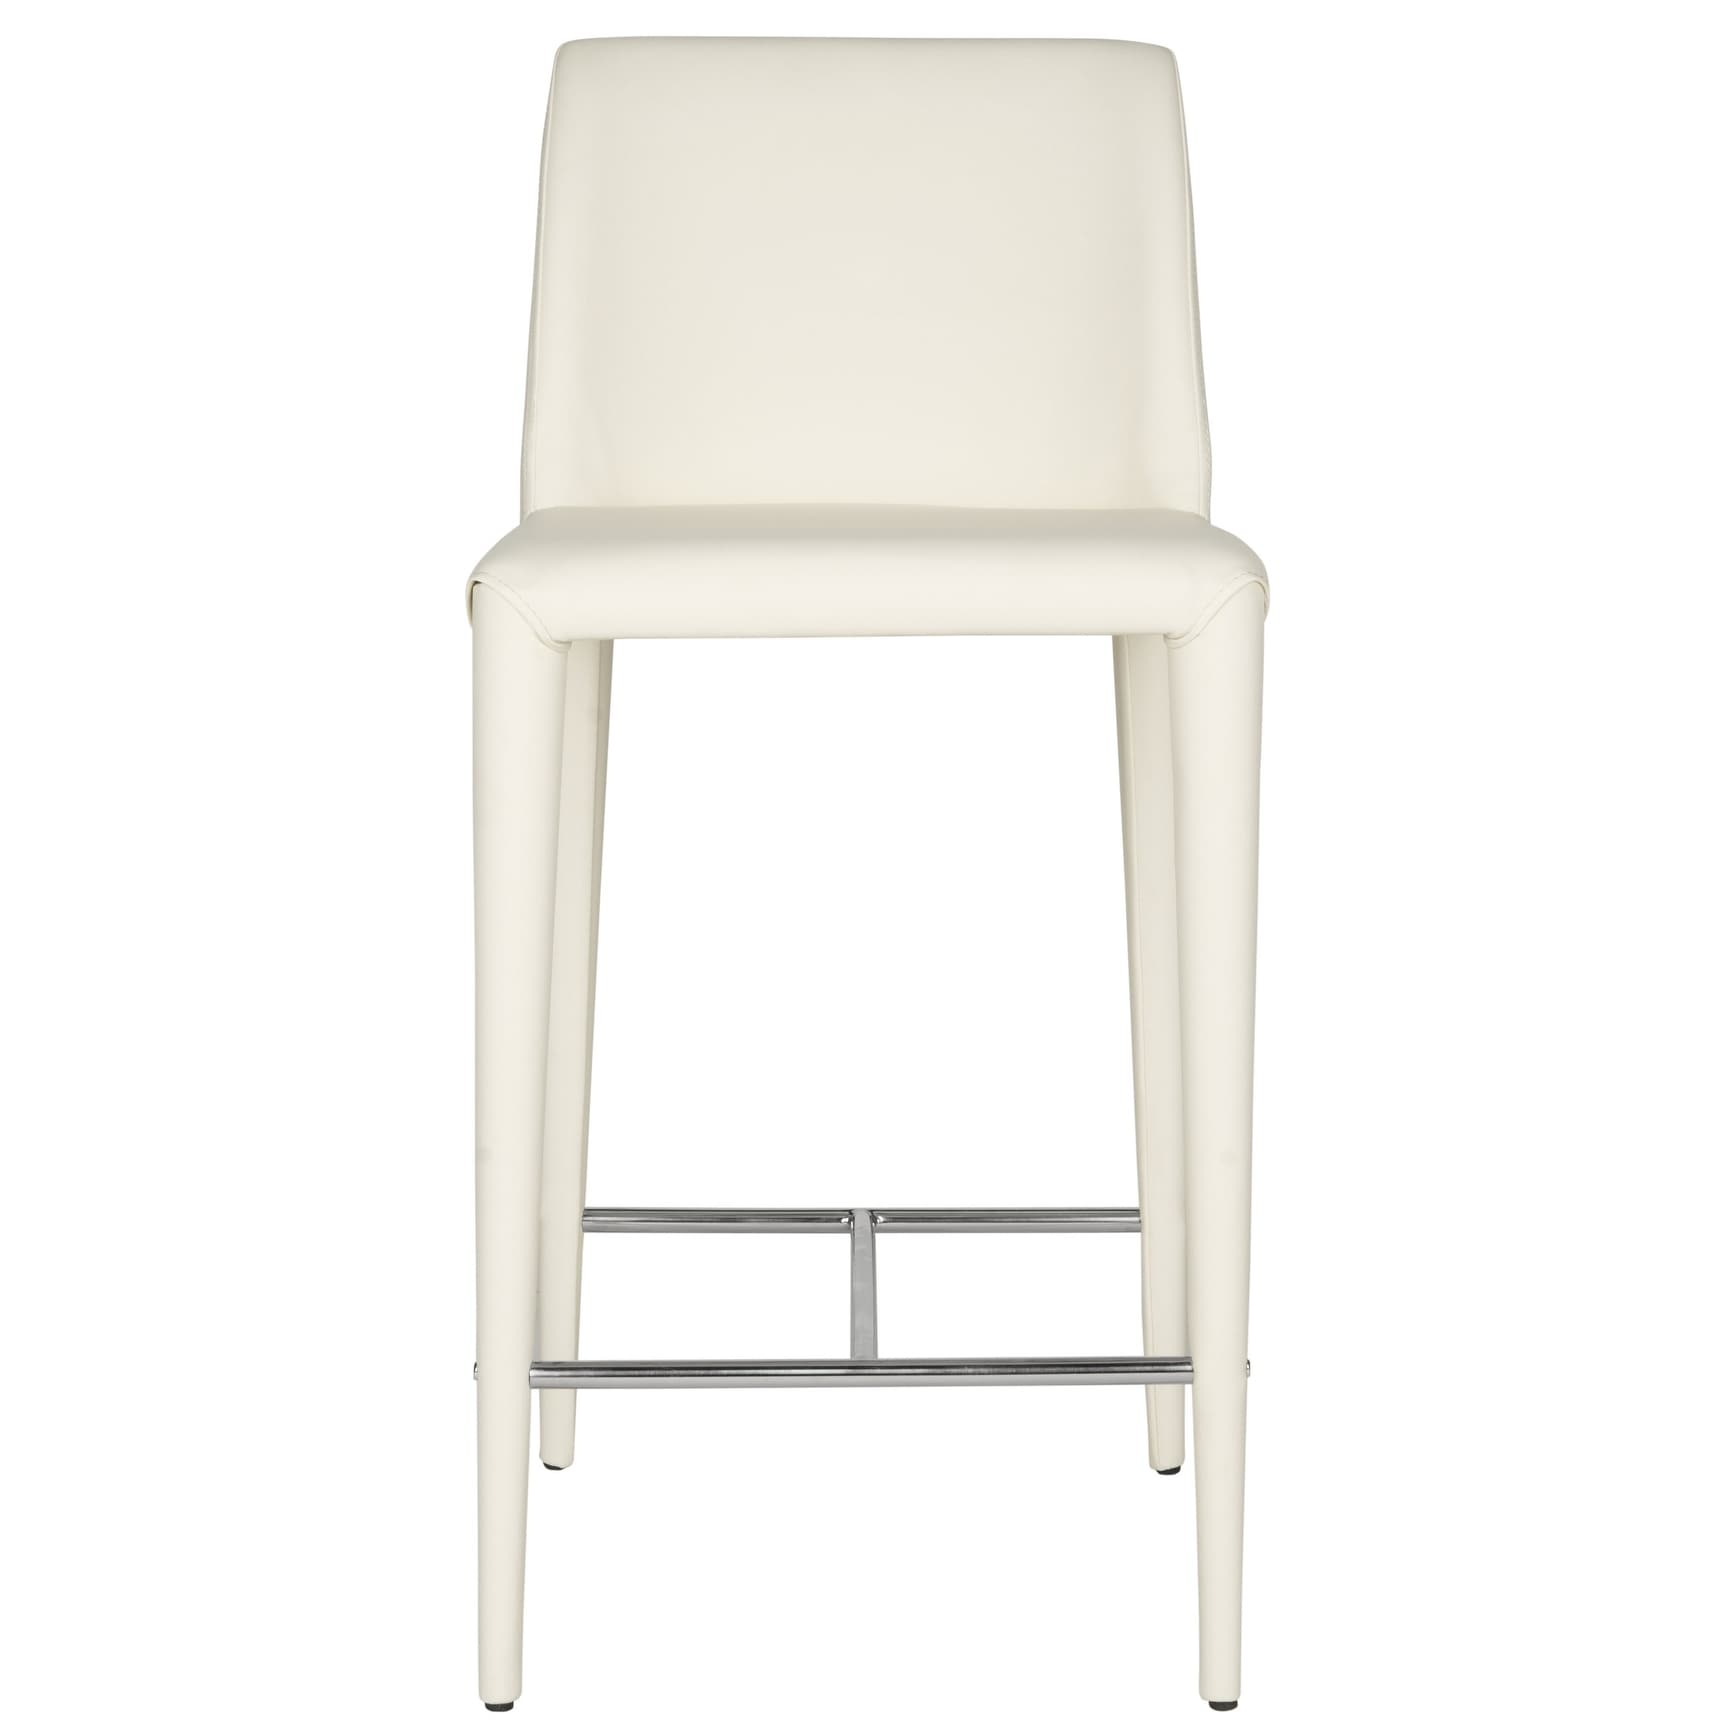 Safavieh Mid Century 26 Inch Garretson White Counter Stool Set Of 2 22 6 X 17 4 X 36 2 On Sale Overstock 10353726